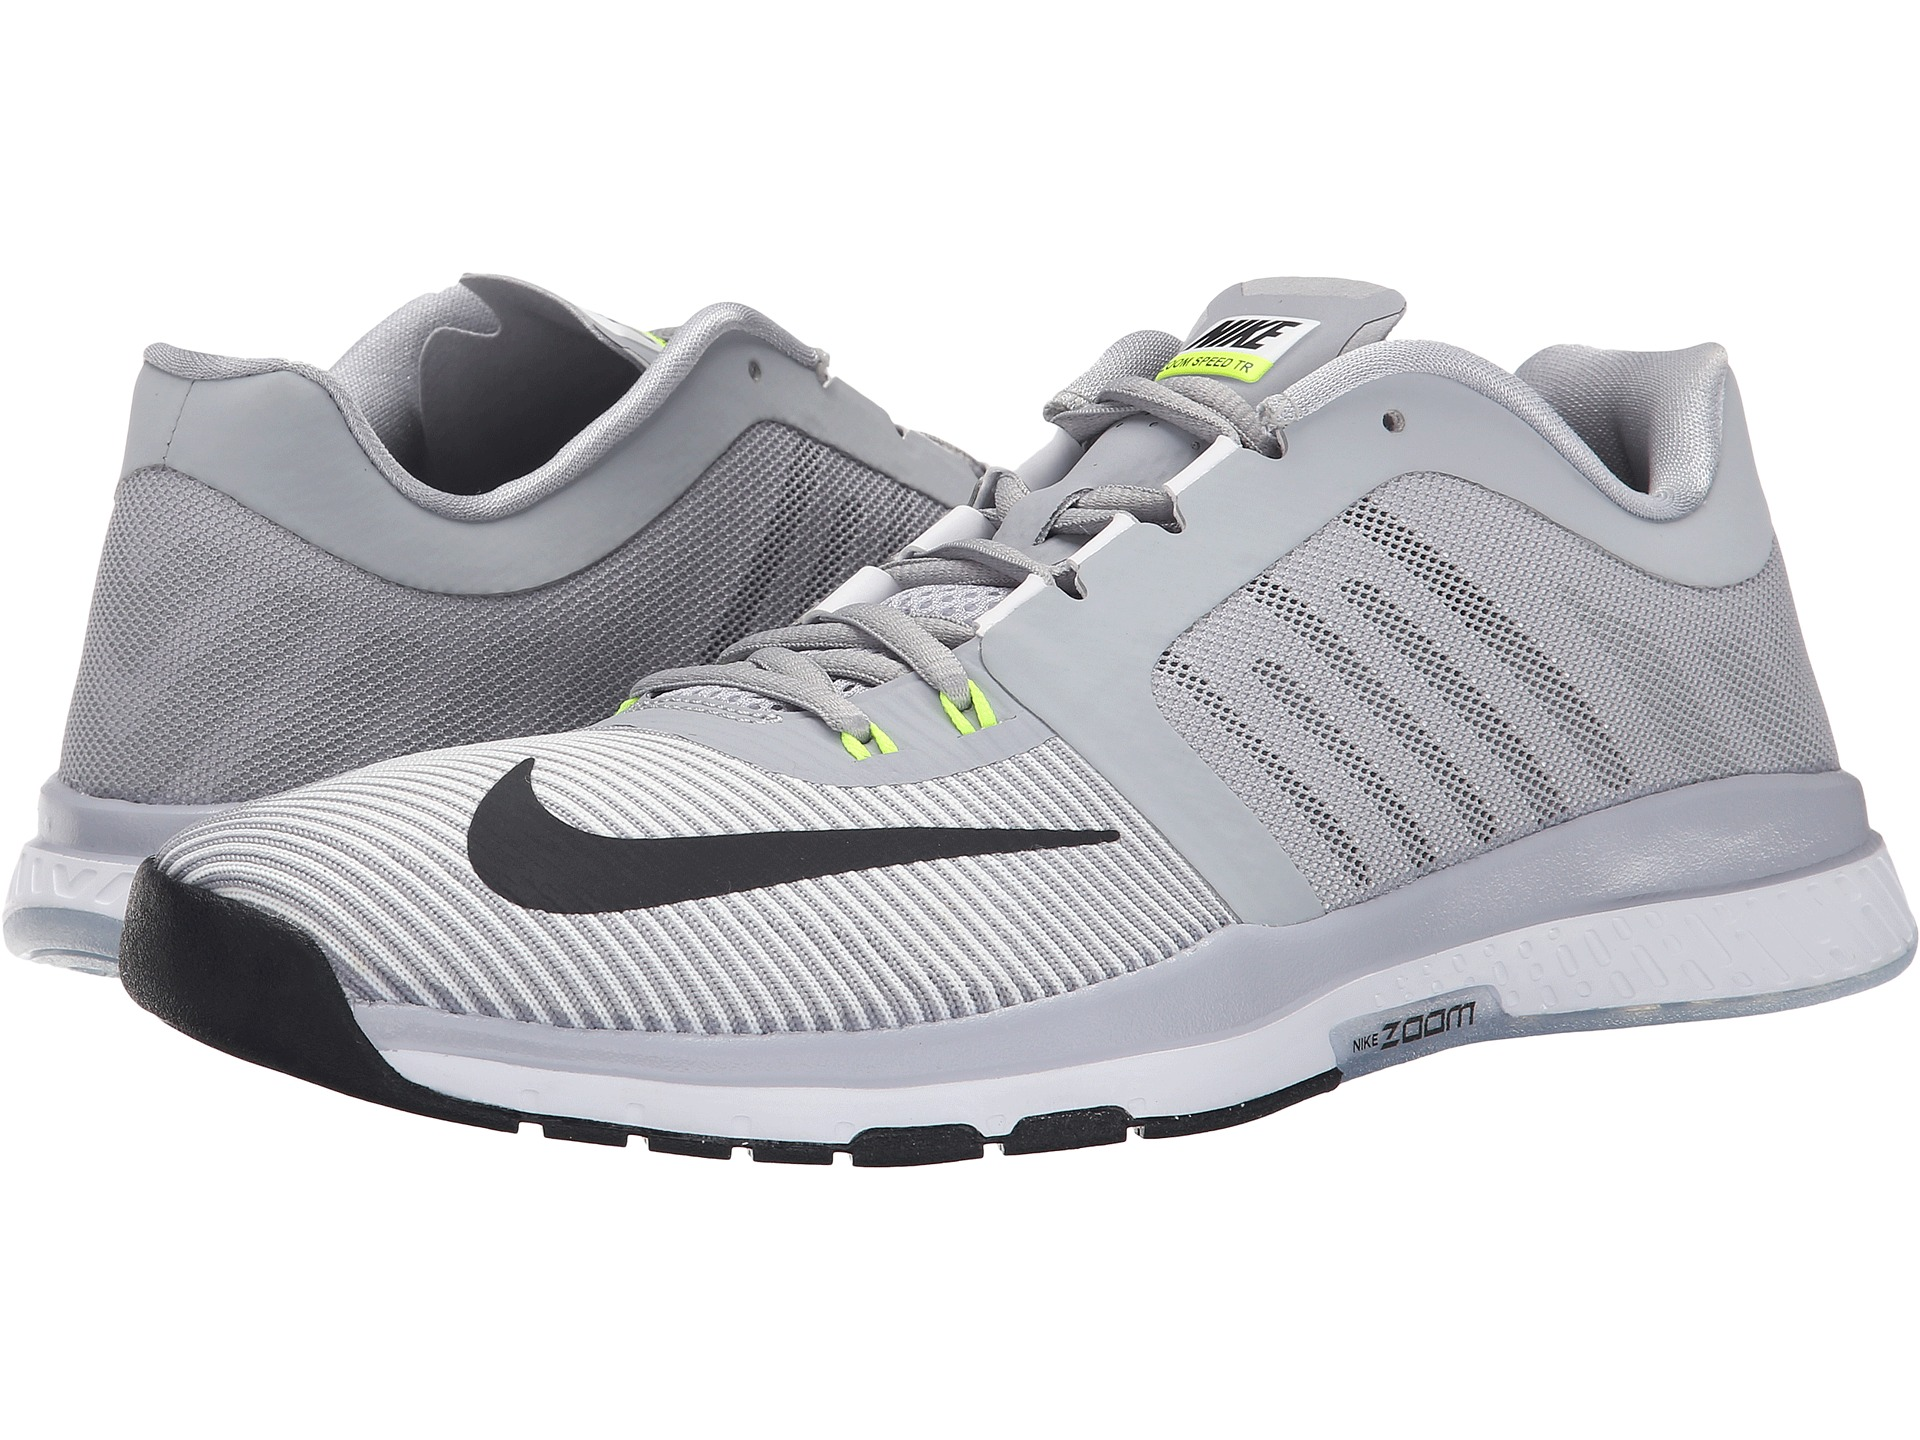 Nike Zoom Speed Tr Running Shoe Review